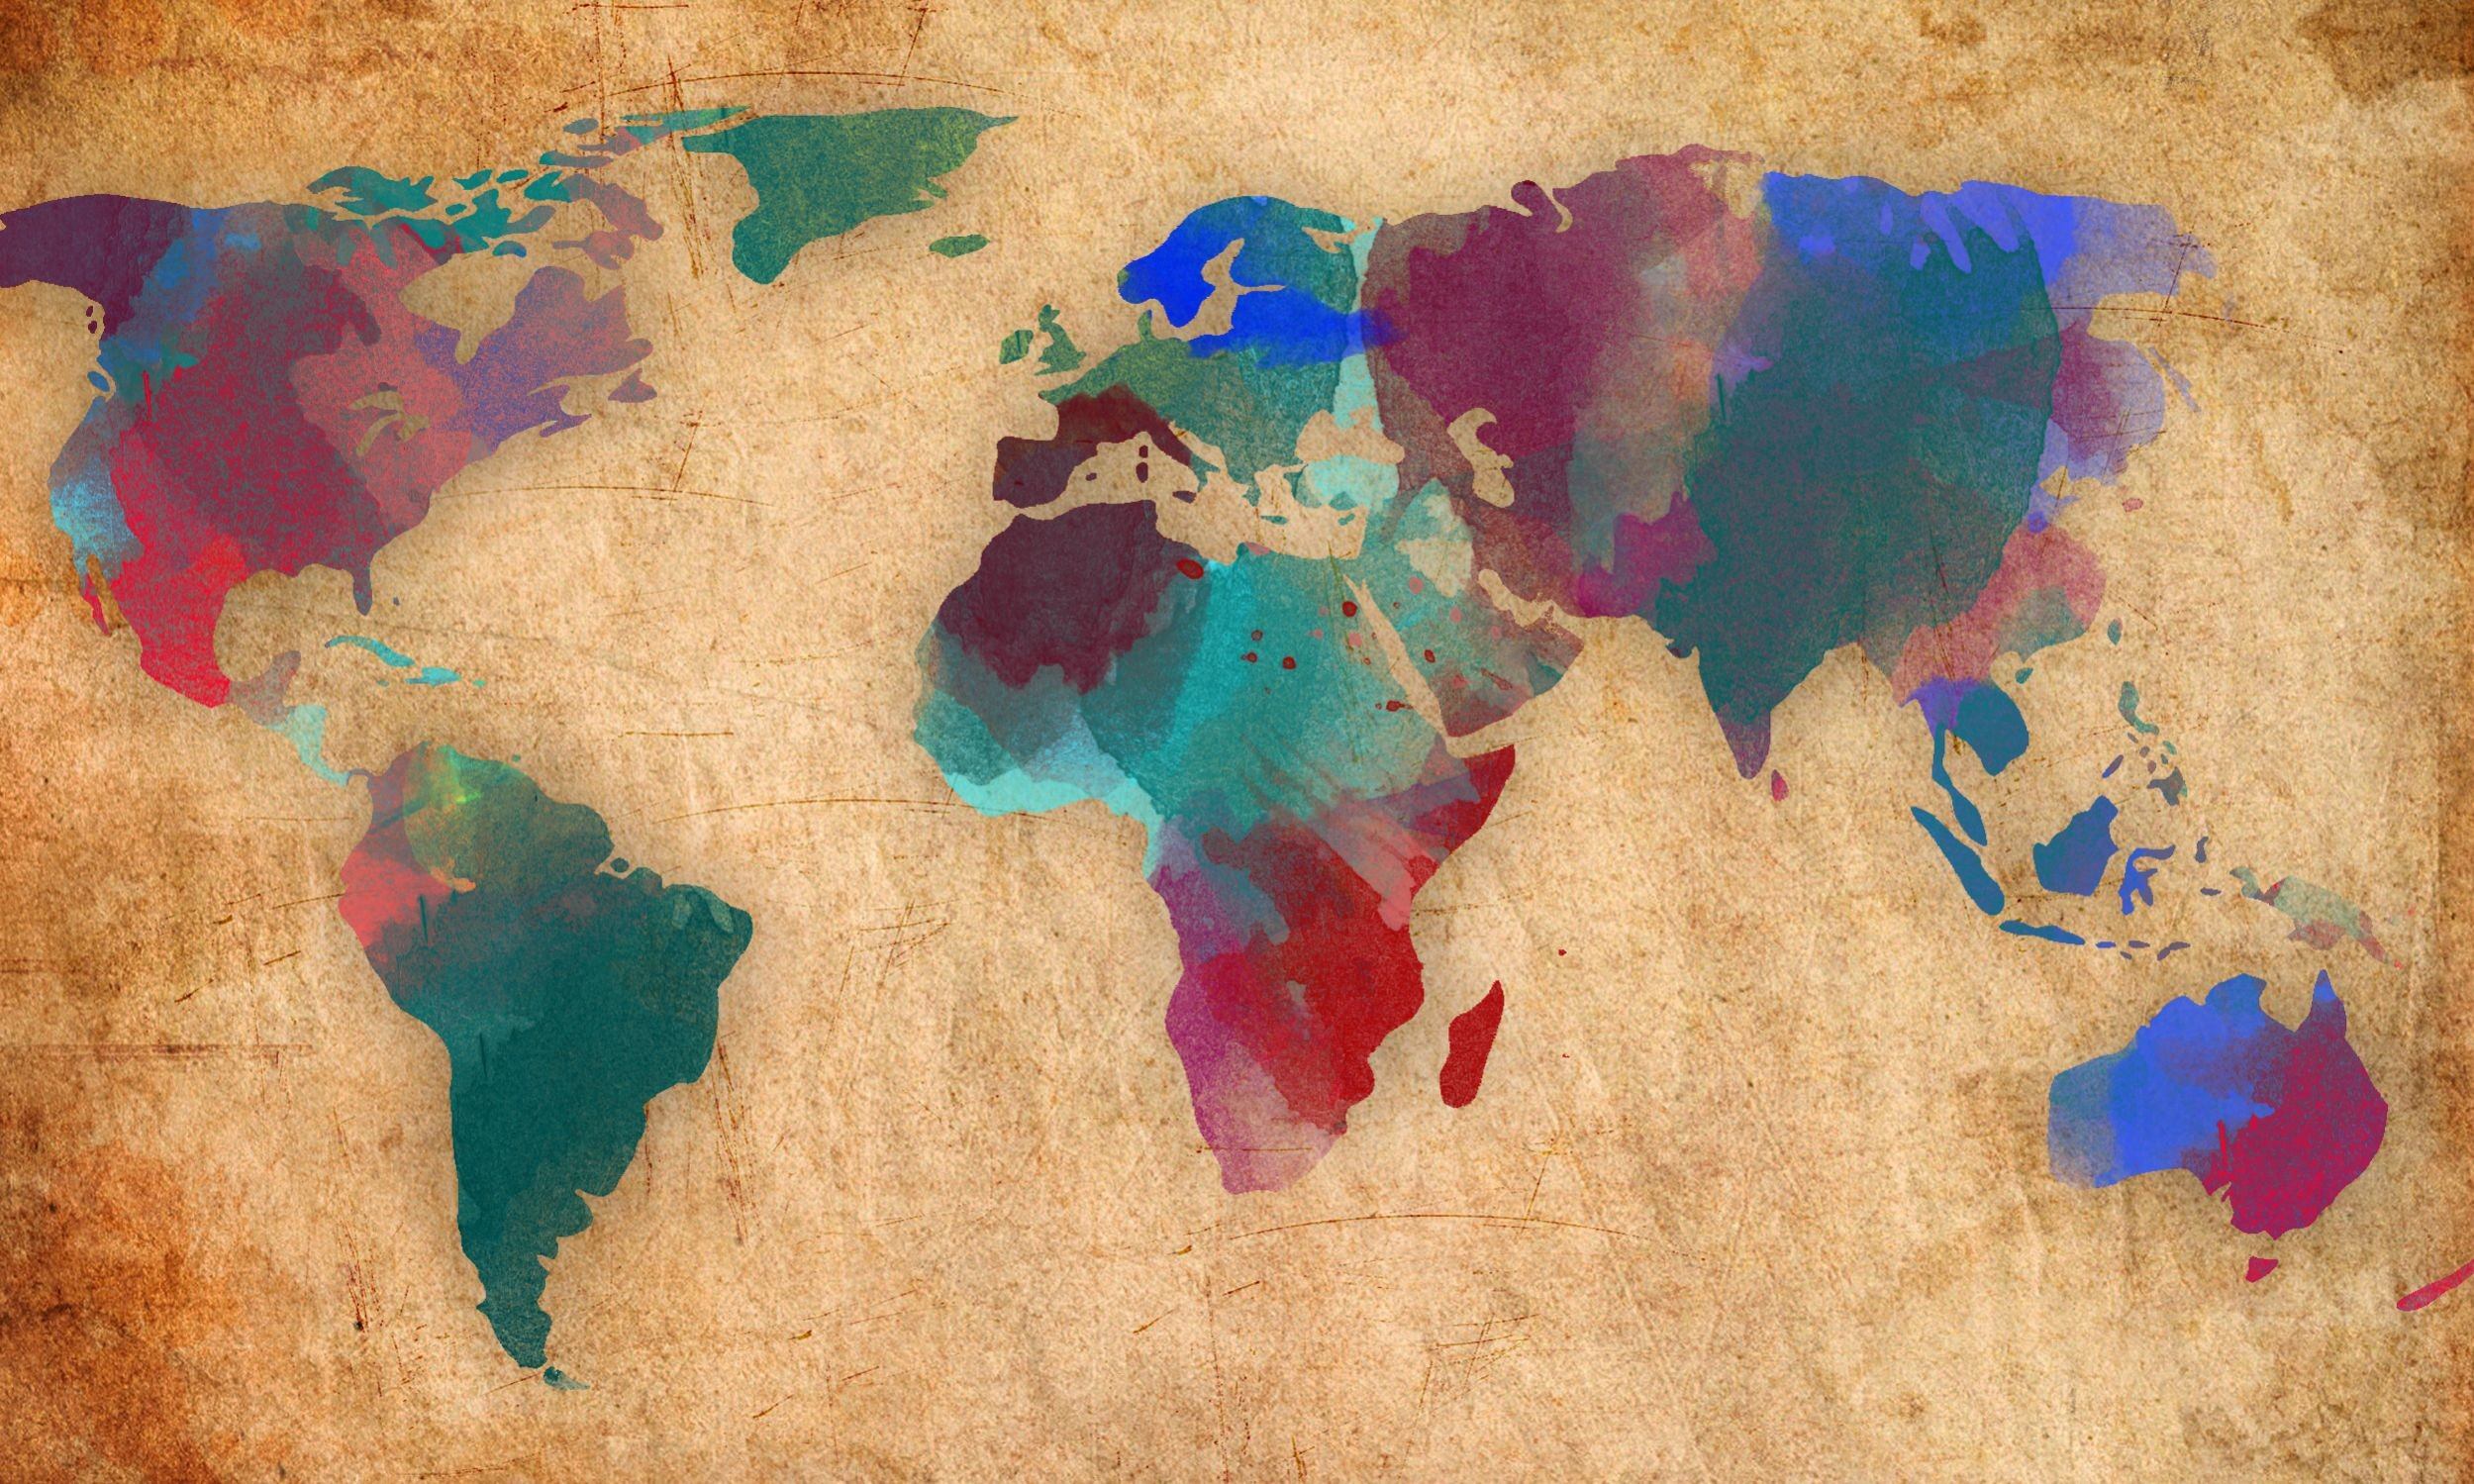 World map desktop wallpaper 54 images 1920x1200 old world map wallpaper download gumiabroncs Image collections